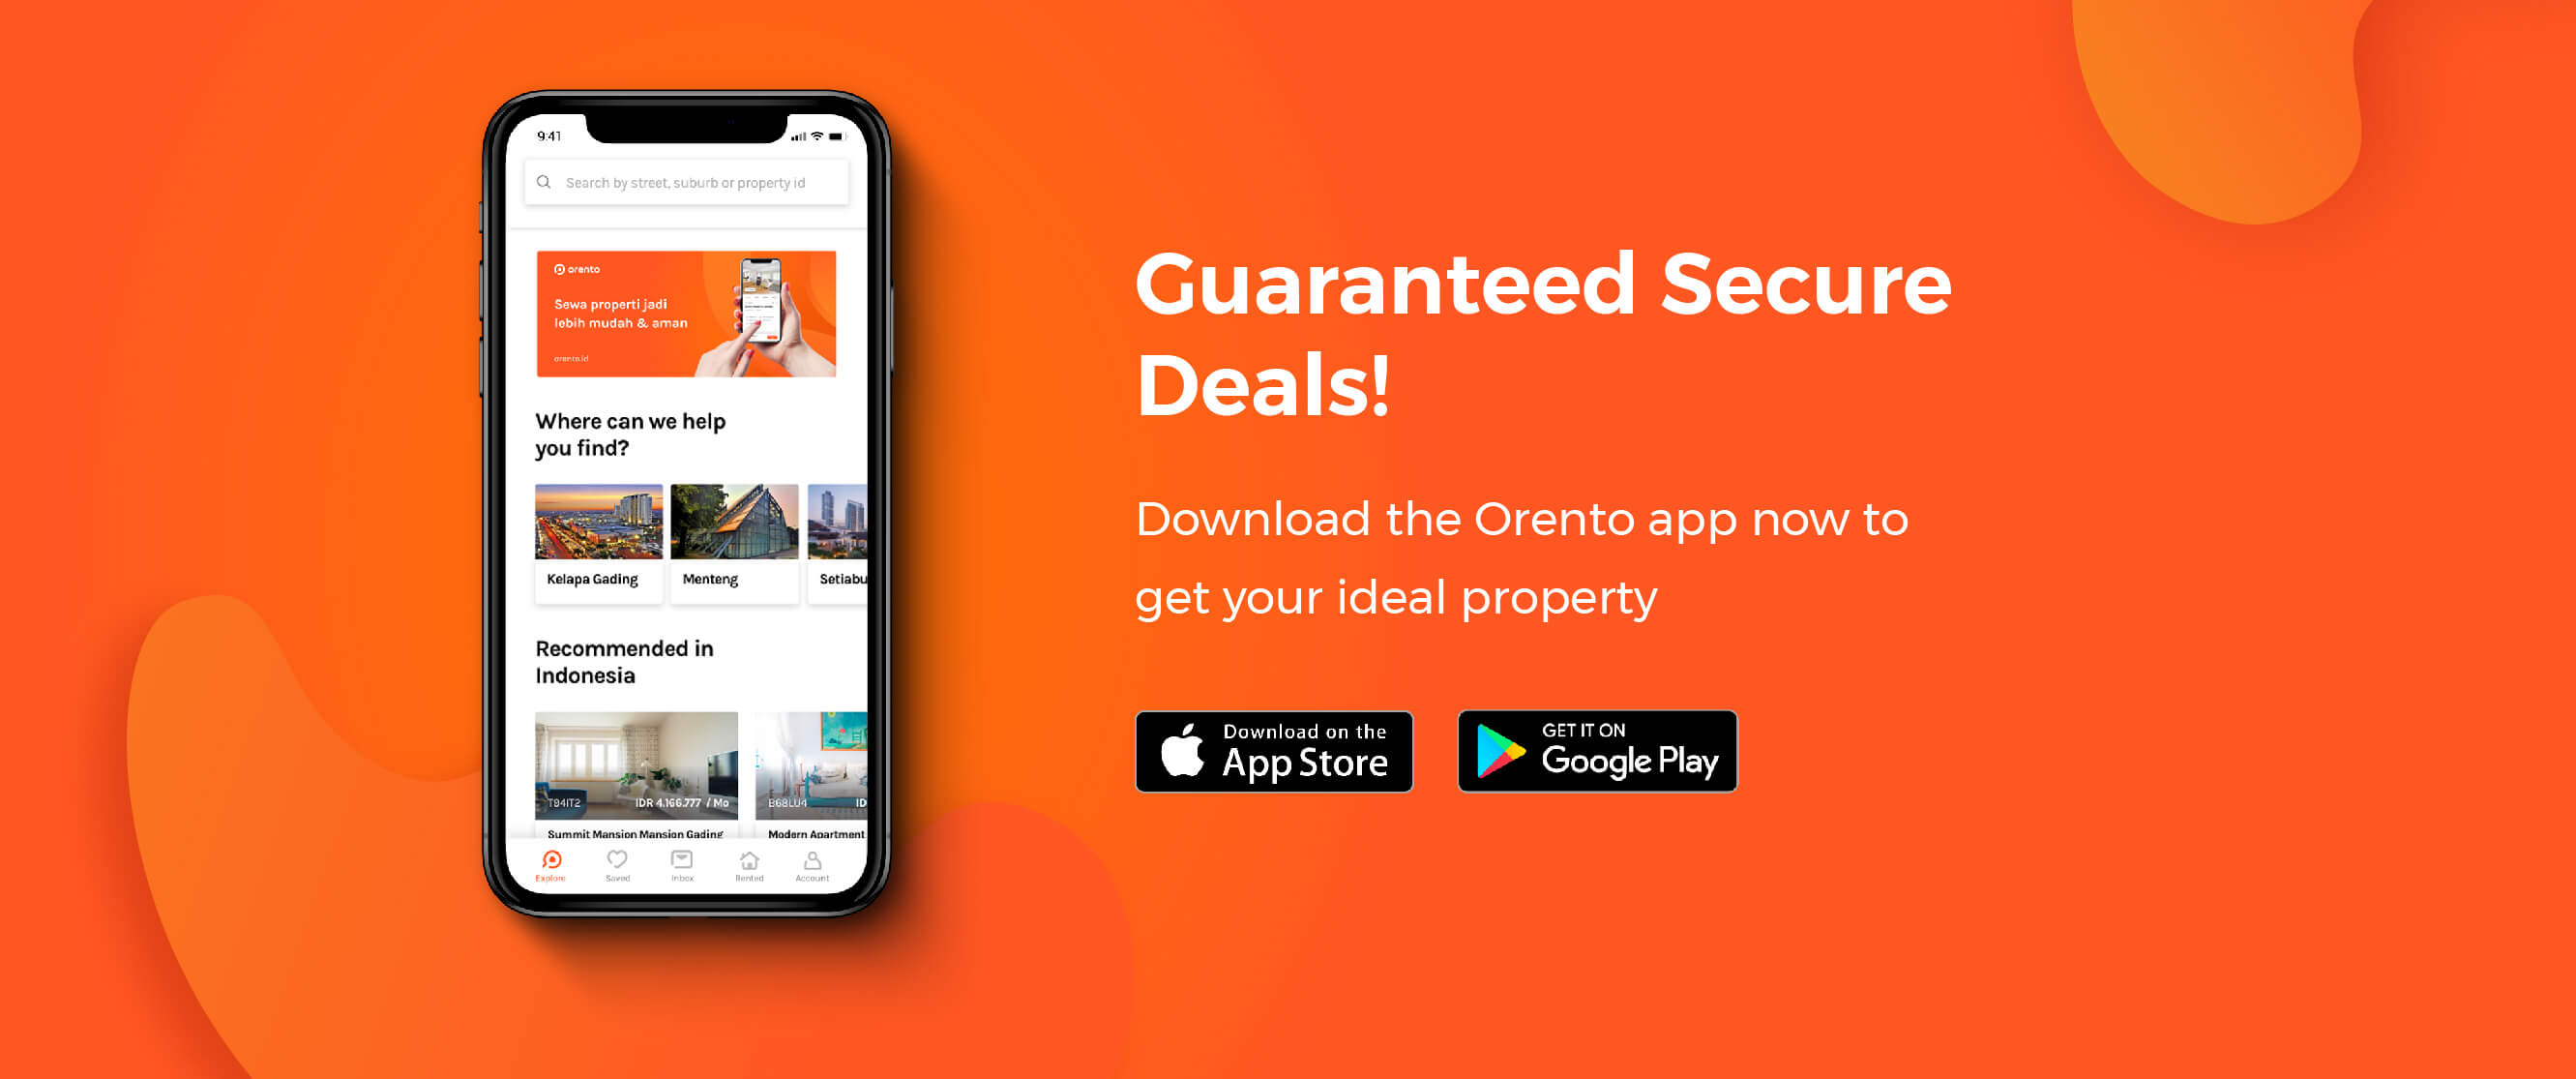 Guaranteed secure deals!